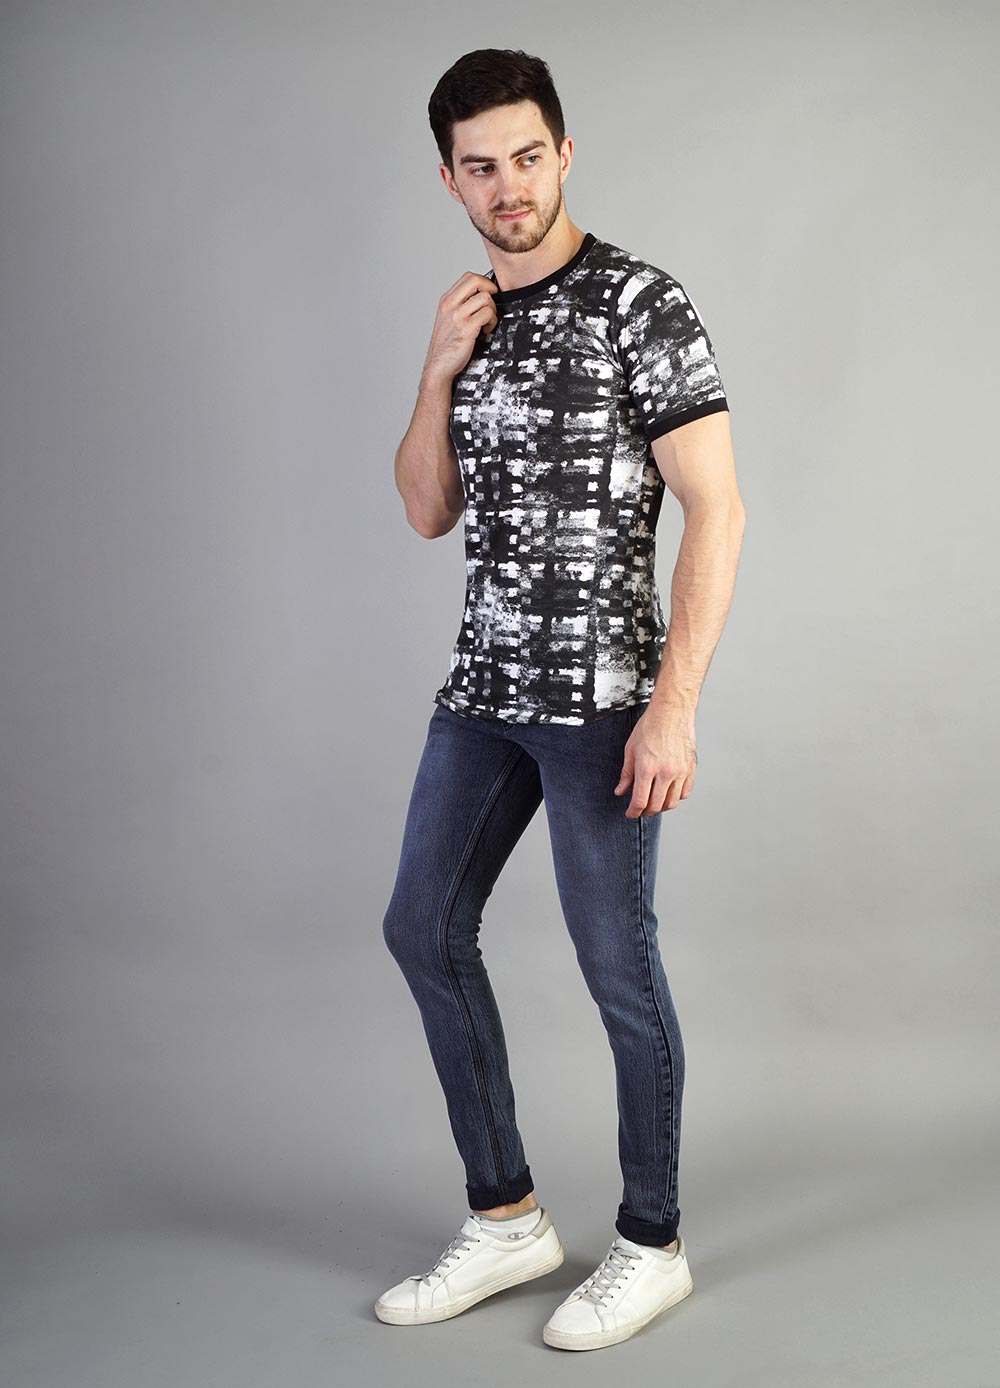 garments photography for men's